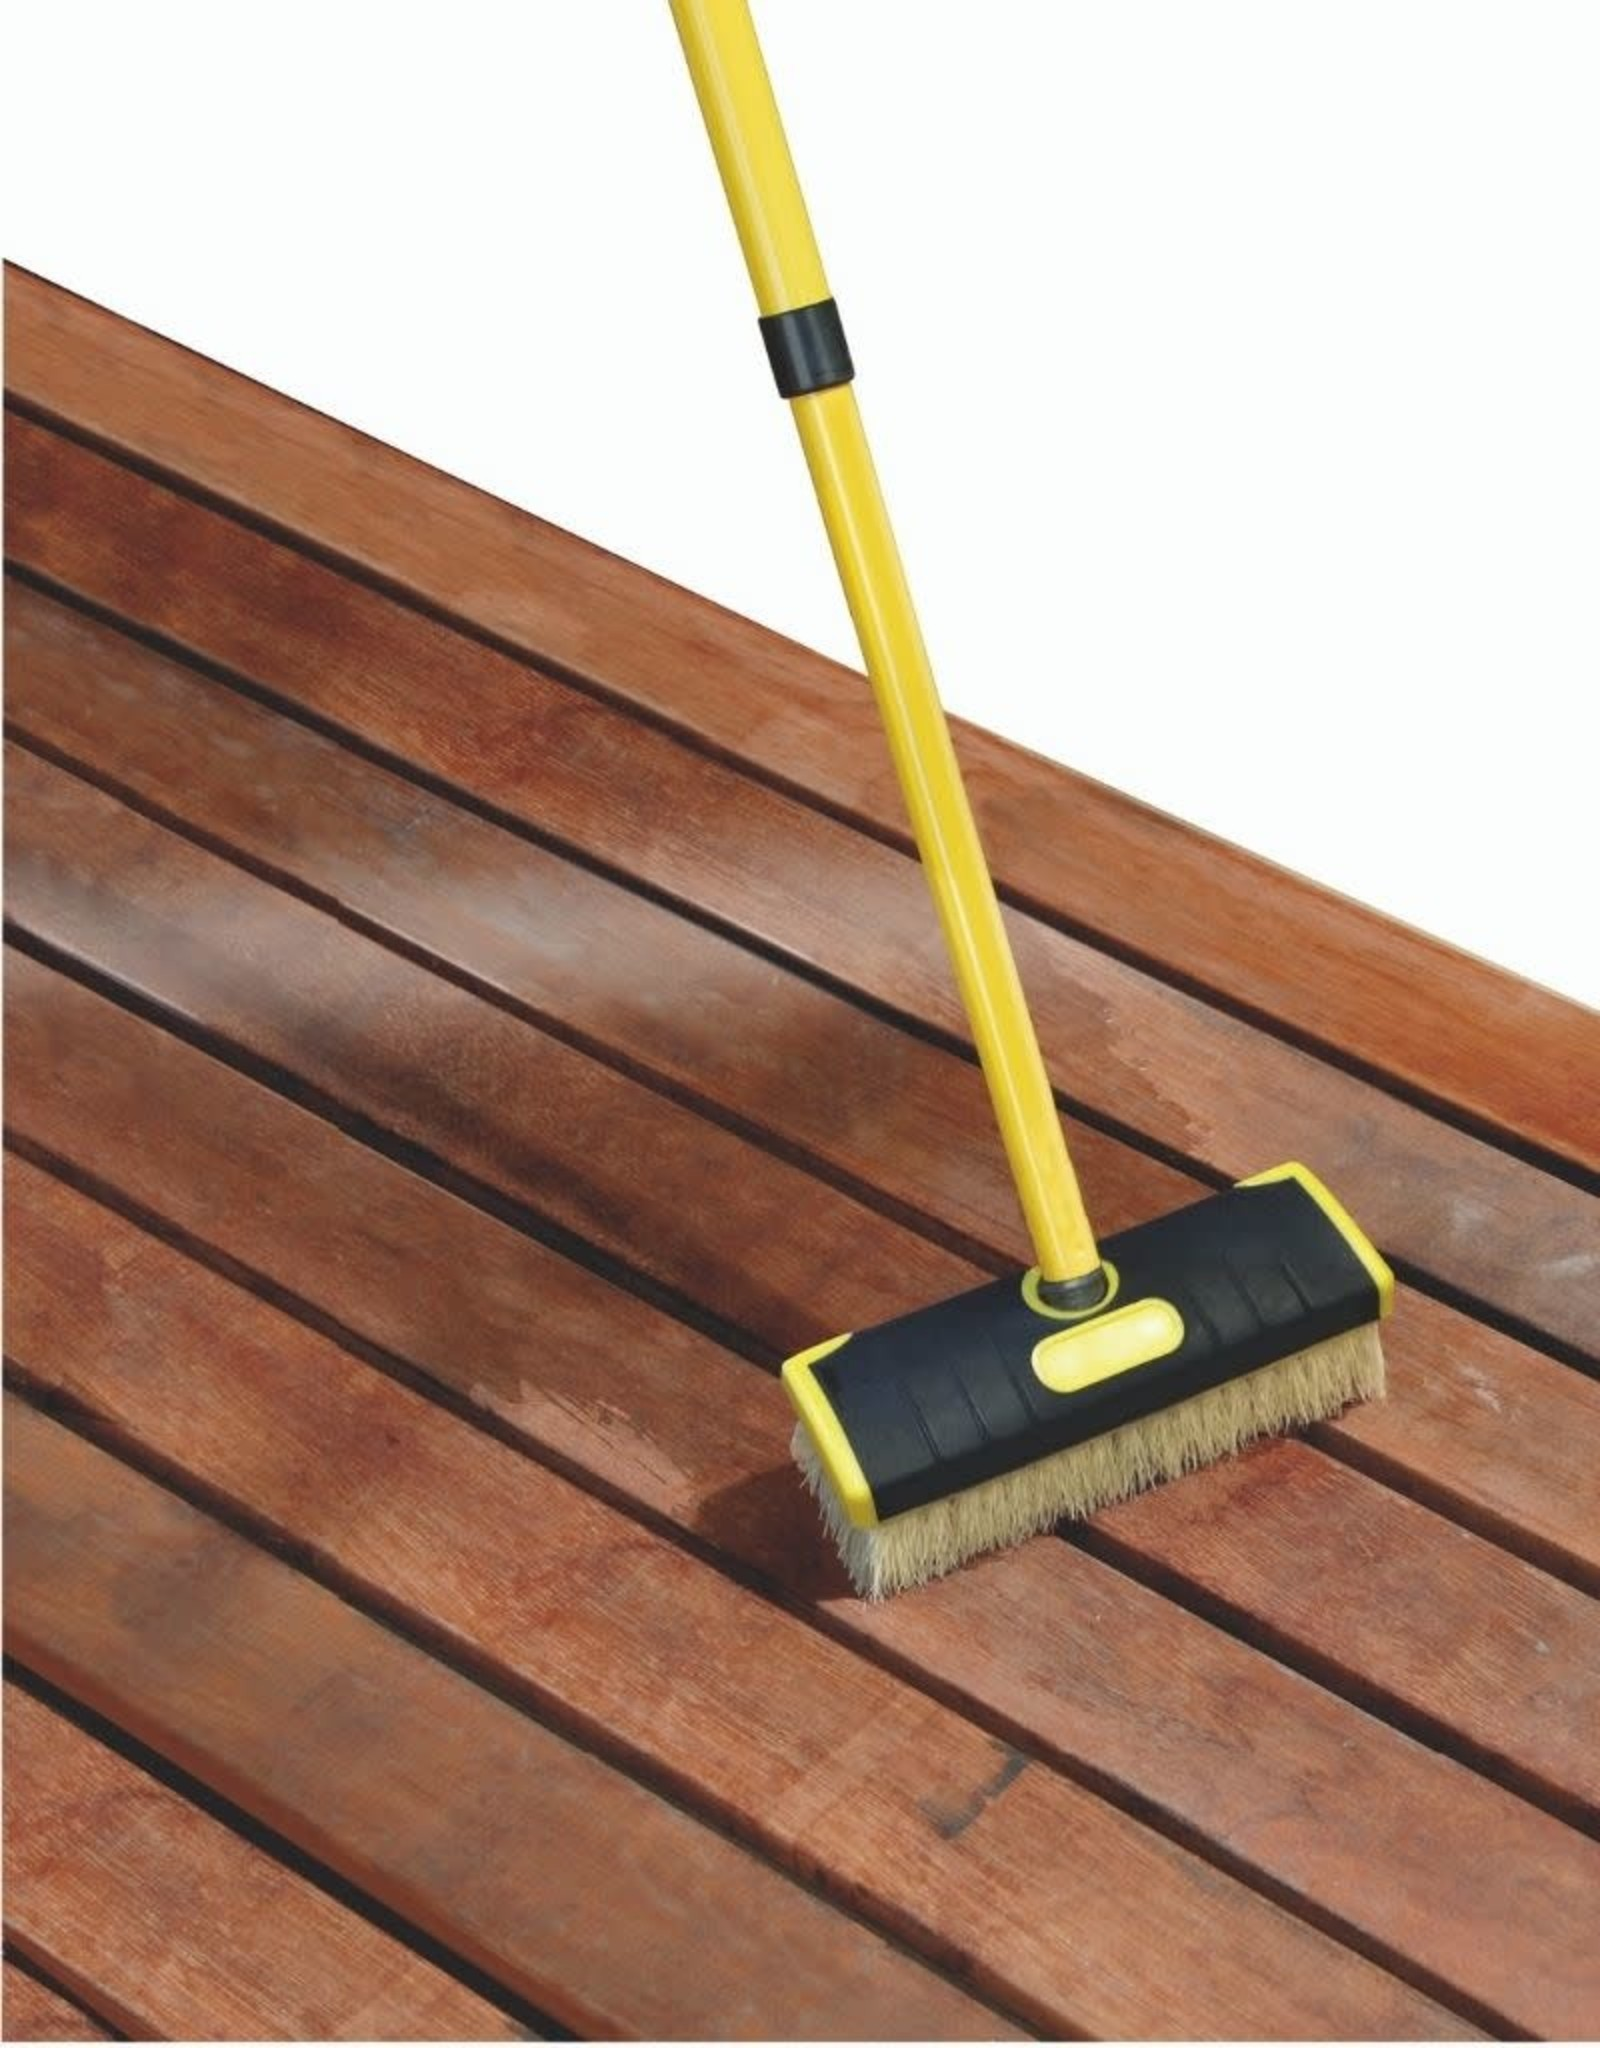 UNI-PRO Deck Scrubber with Adjustable Pole